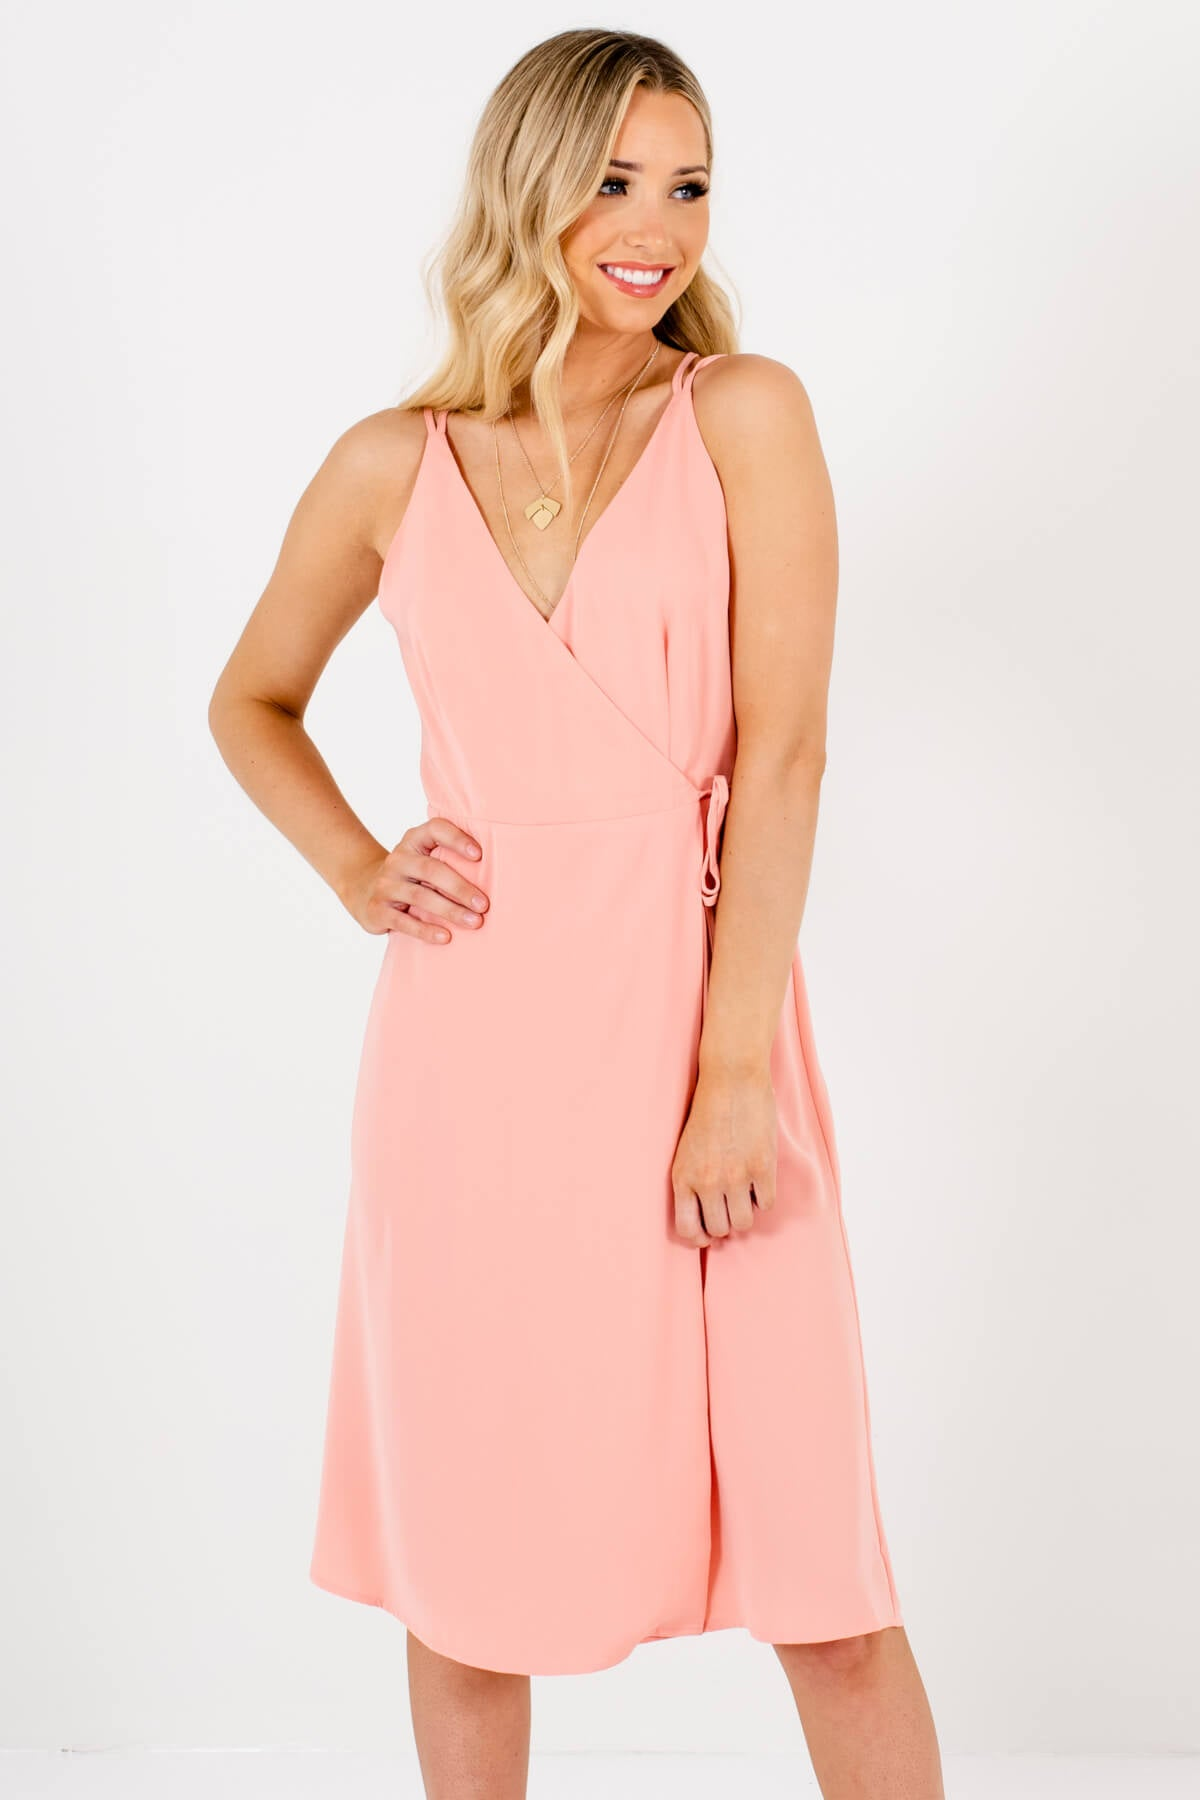 Pink Wrap Style Boutique Knee-Length Dresses for Women